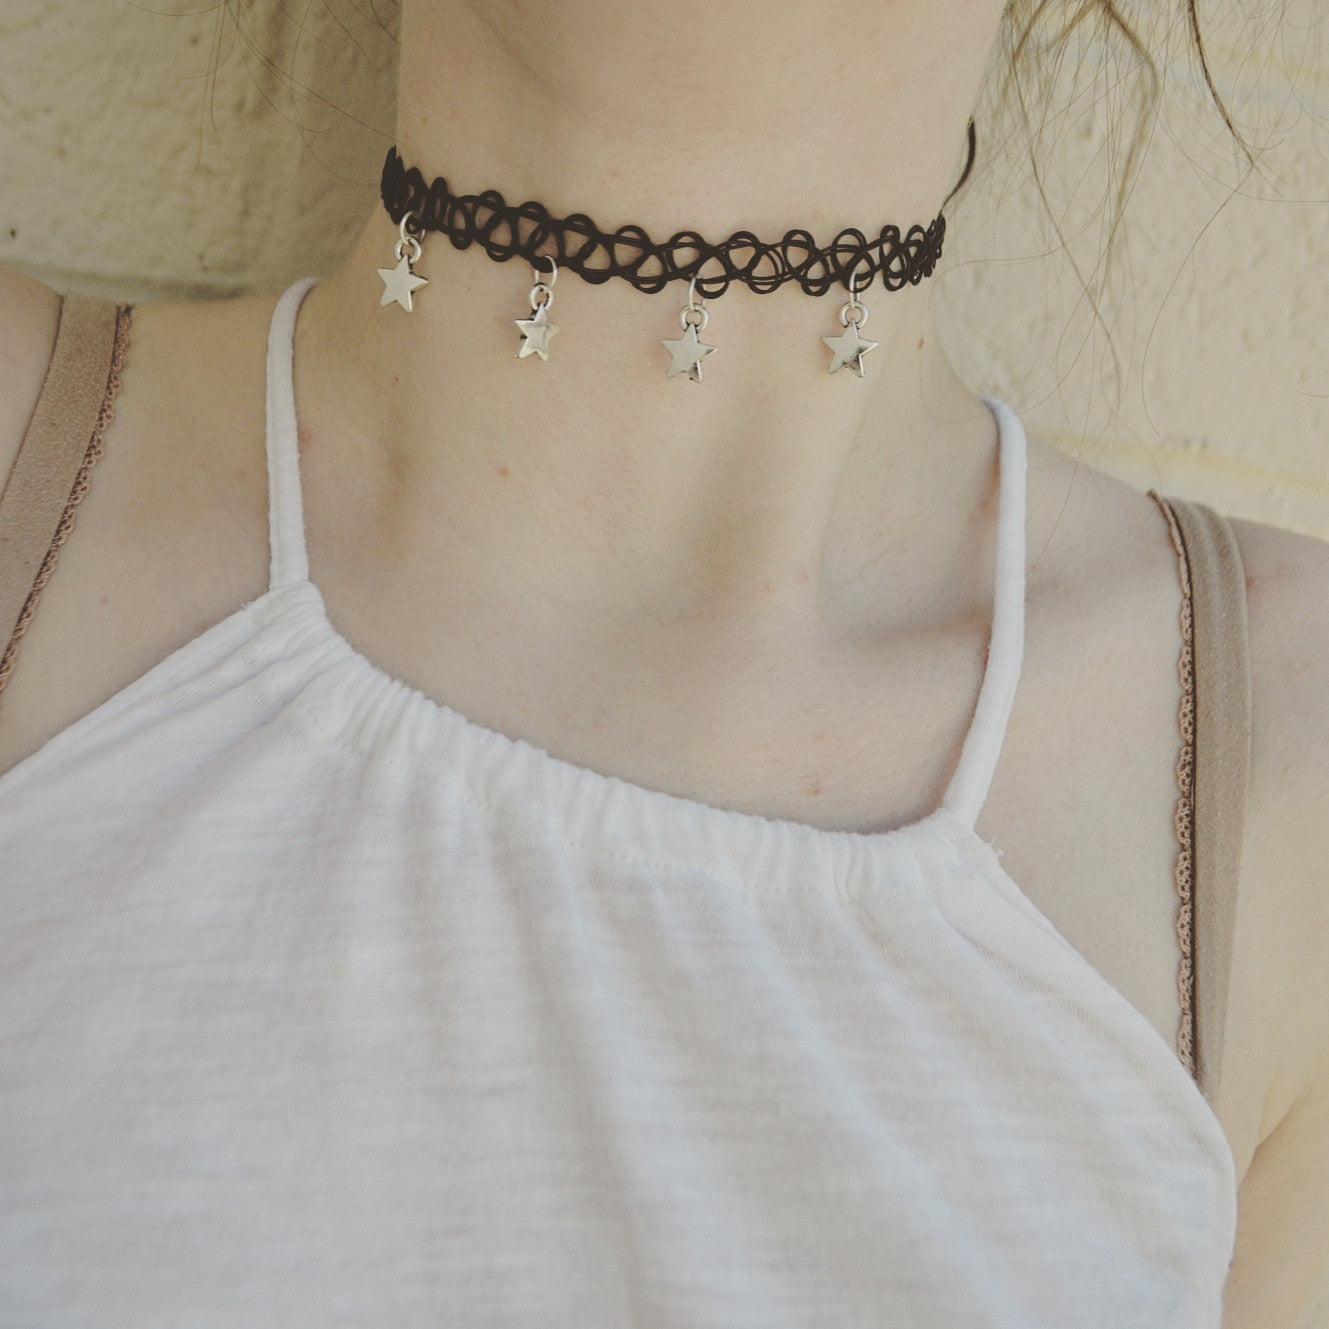 Starlight Choker ♥ - Underlying Beauty - 3